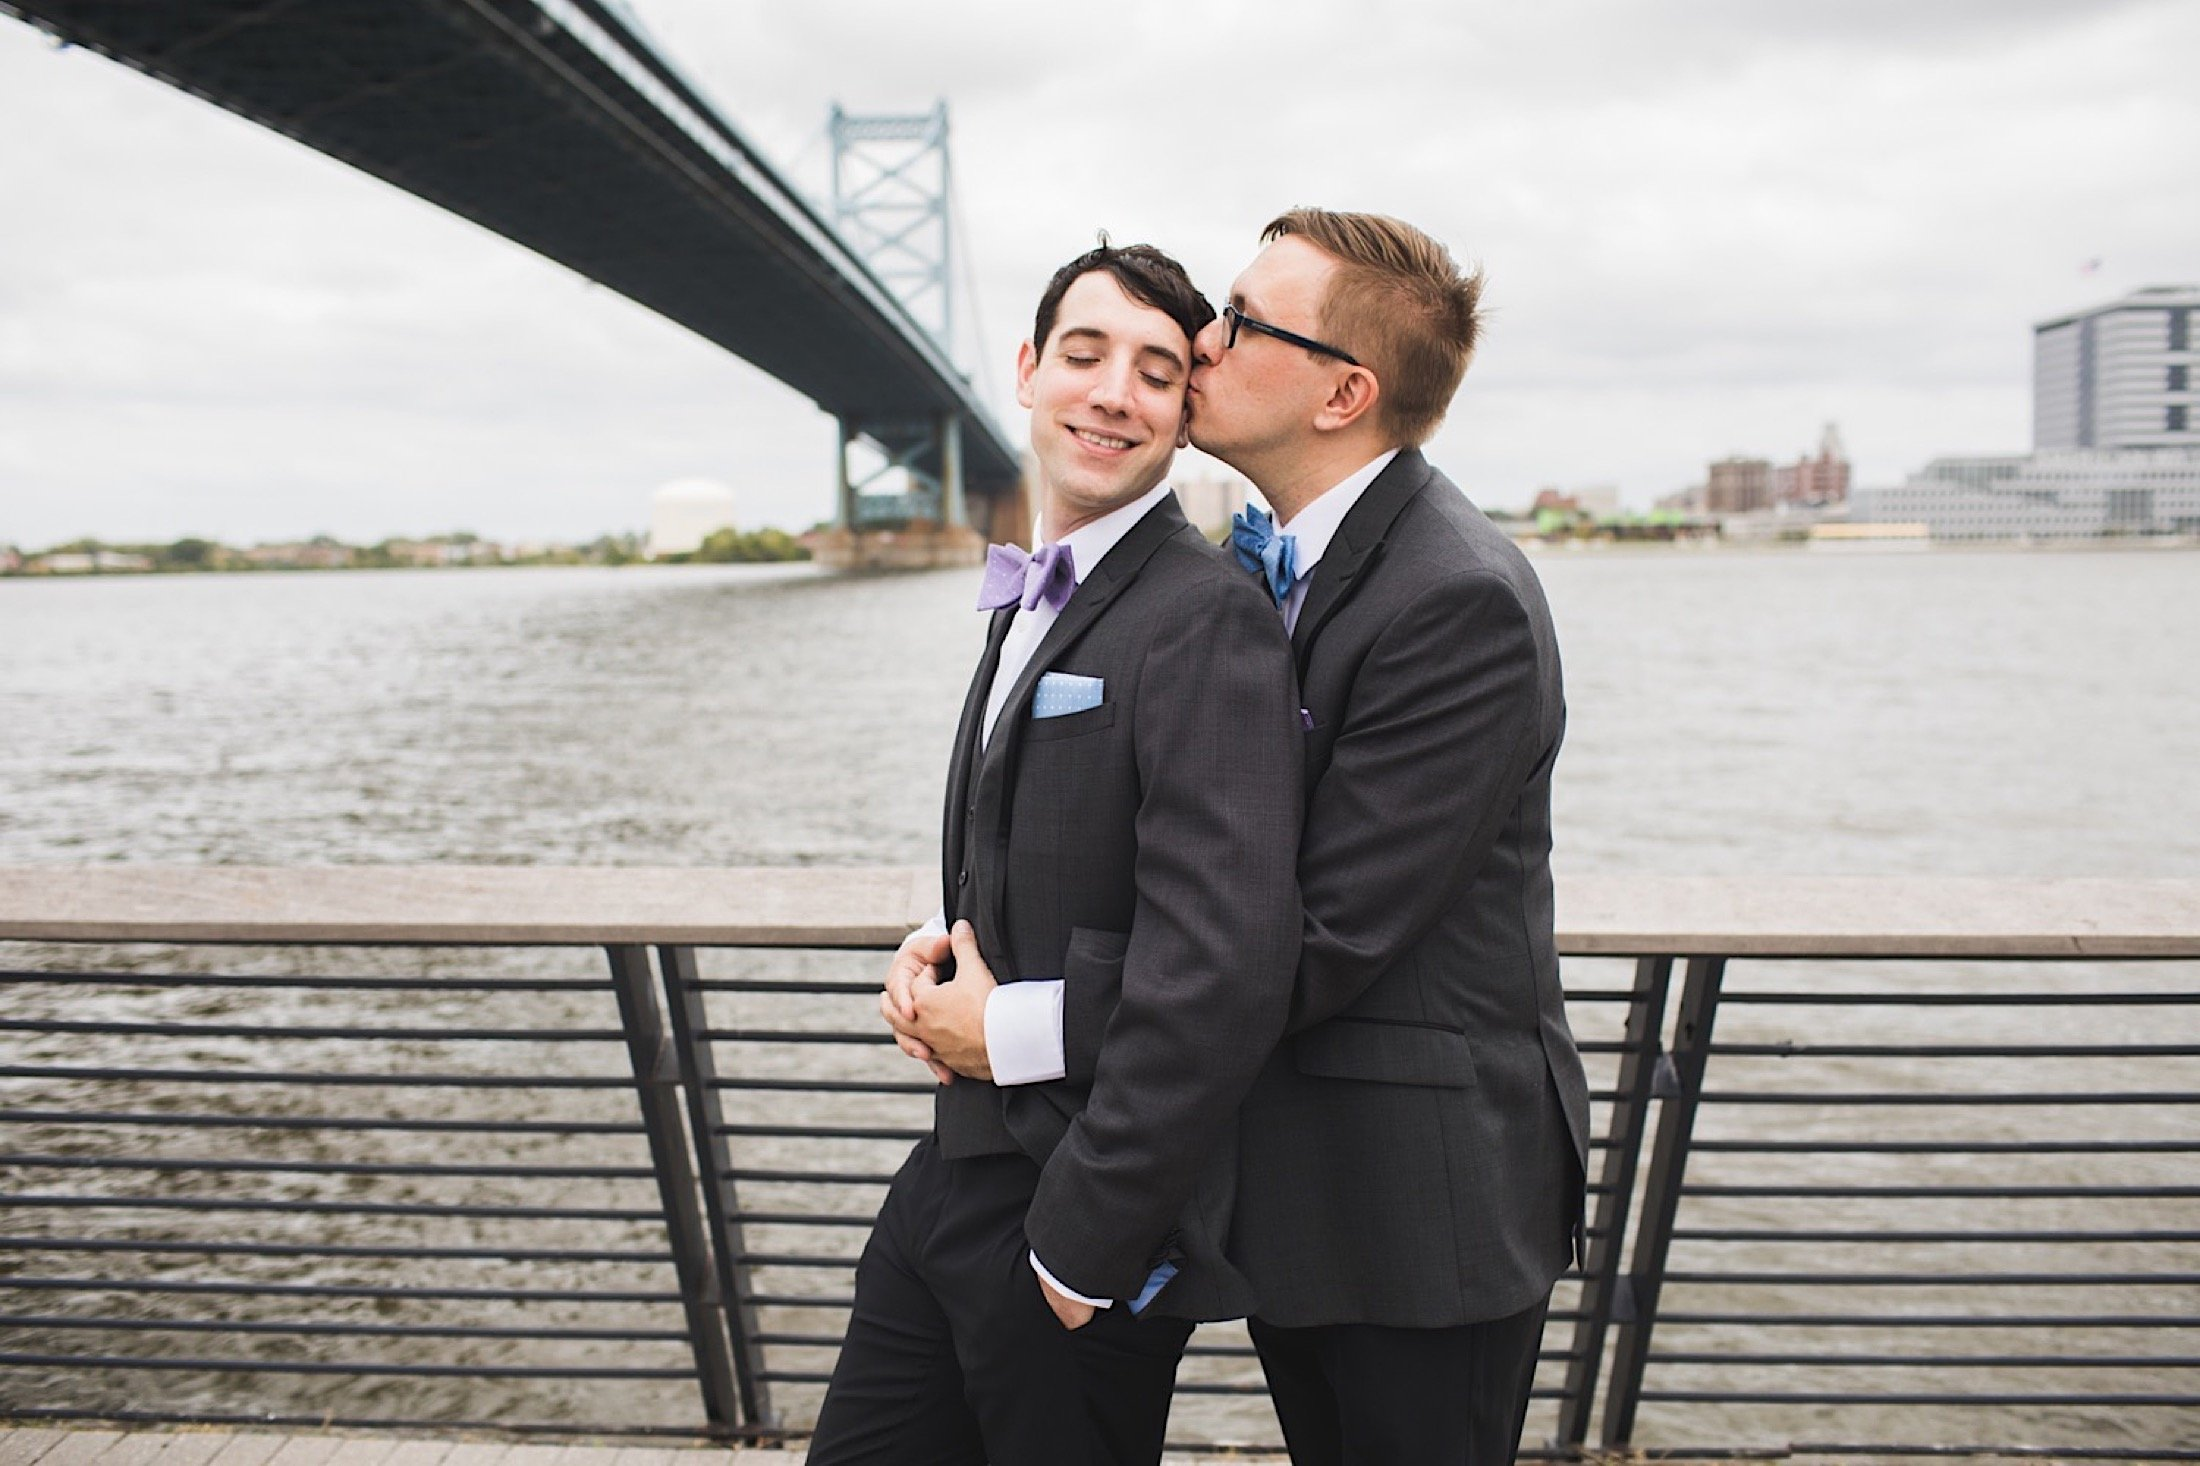 Race Street Pier wedding, photography